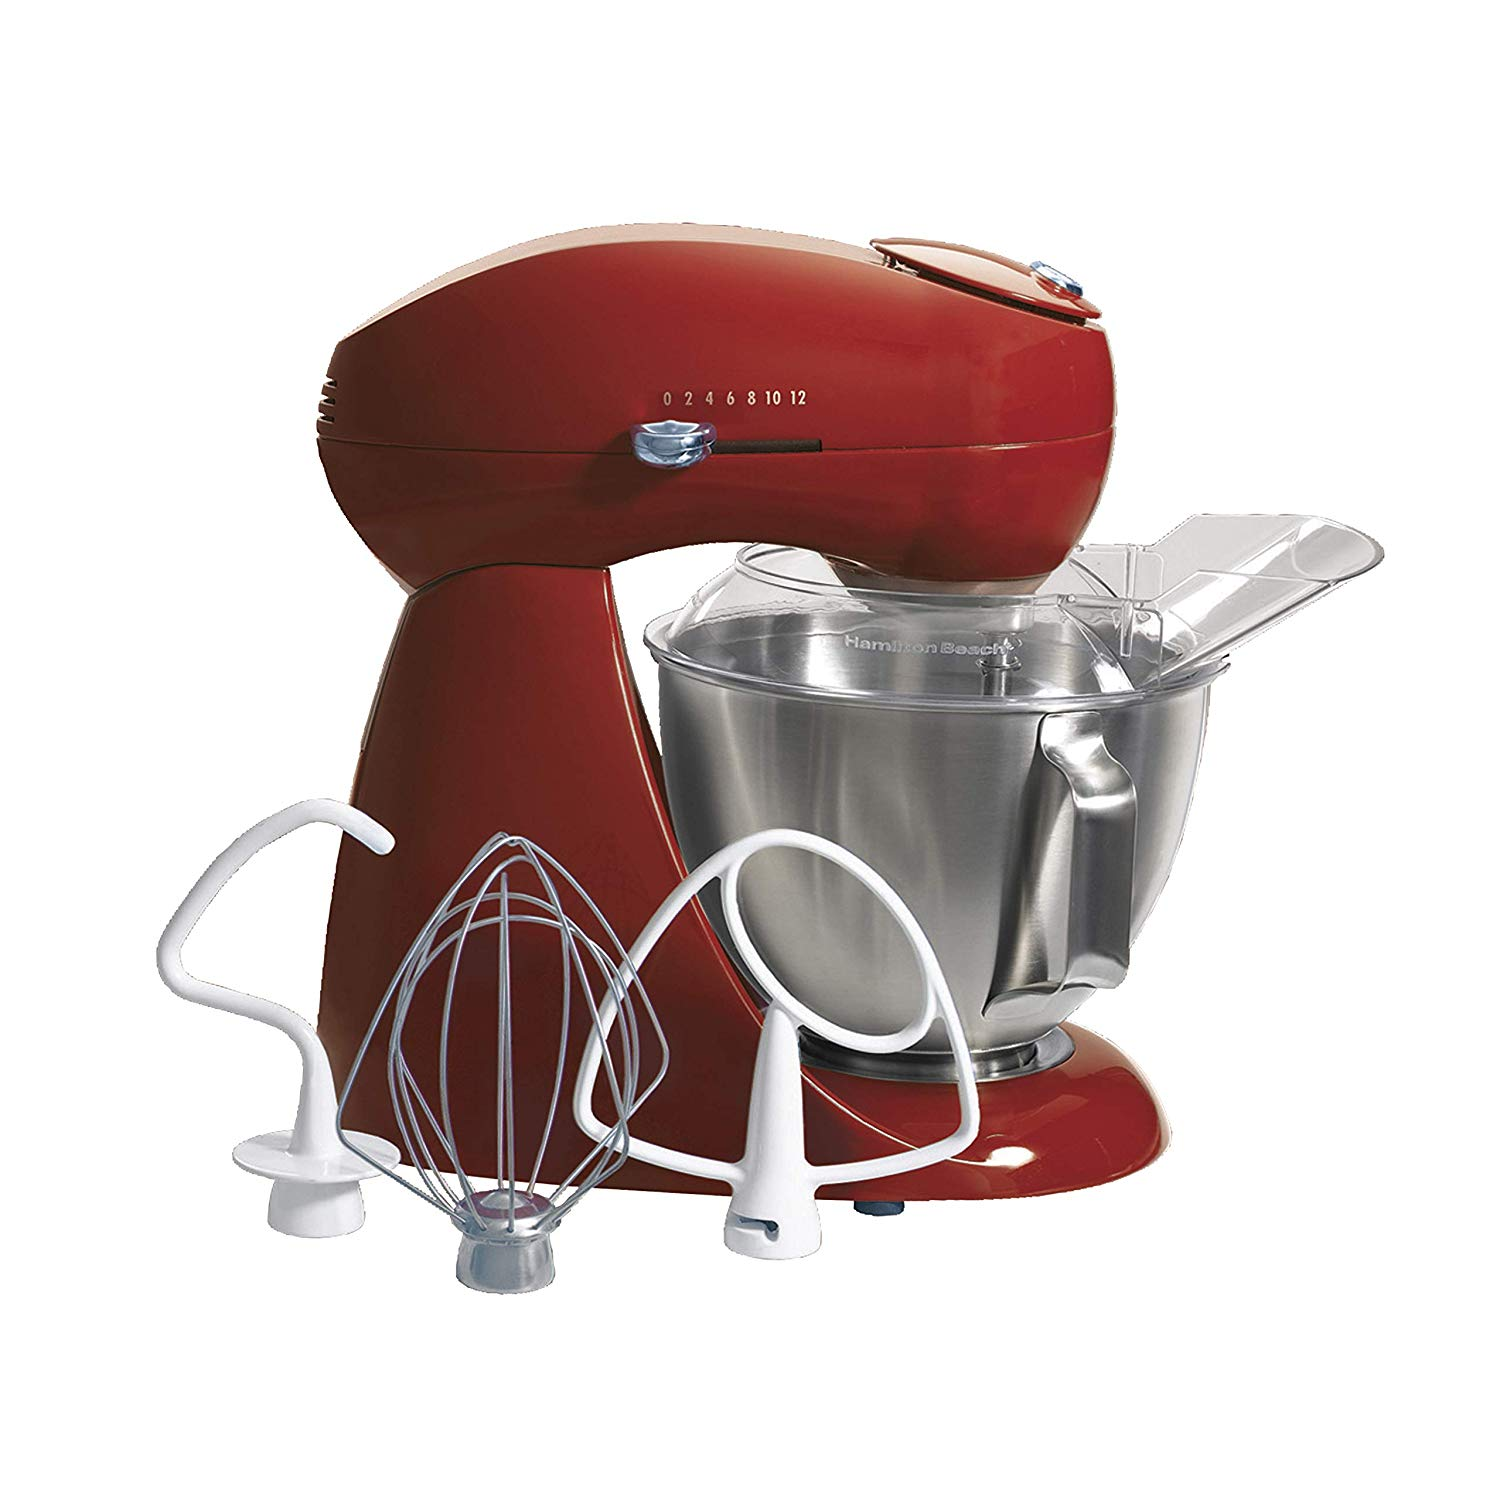 Hamilton beach electrics all-metal stand mixer